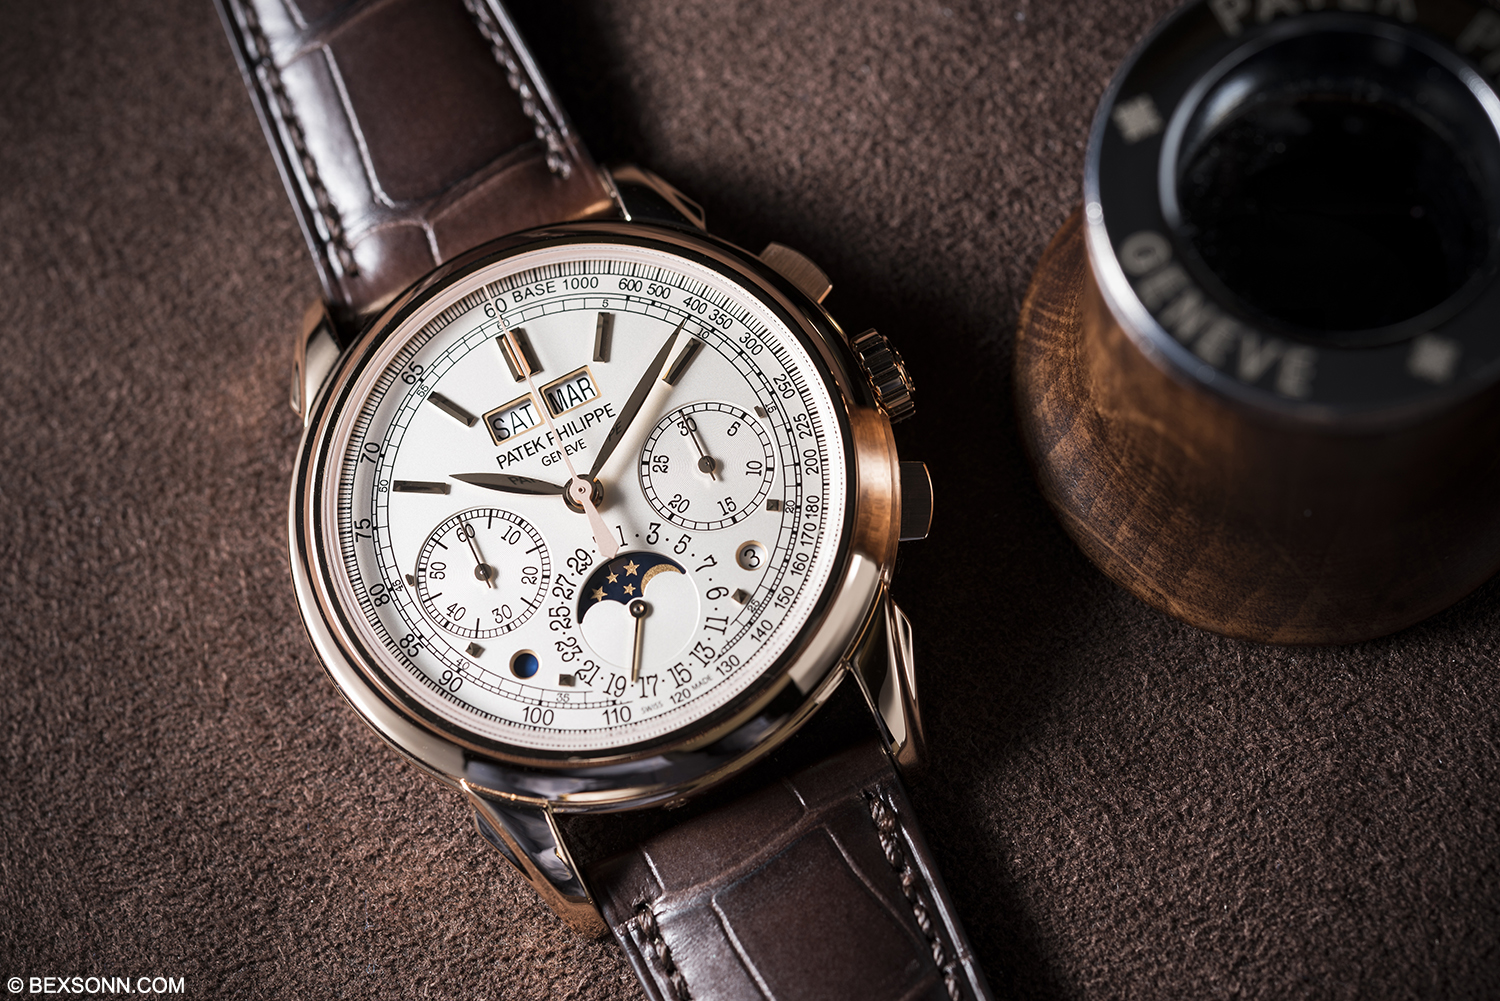 Hands-on With the New Patek Philippe 5270R Perpetual ...